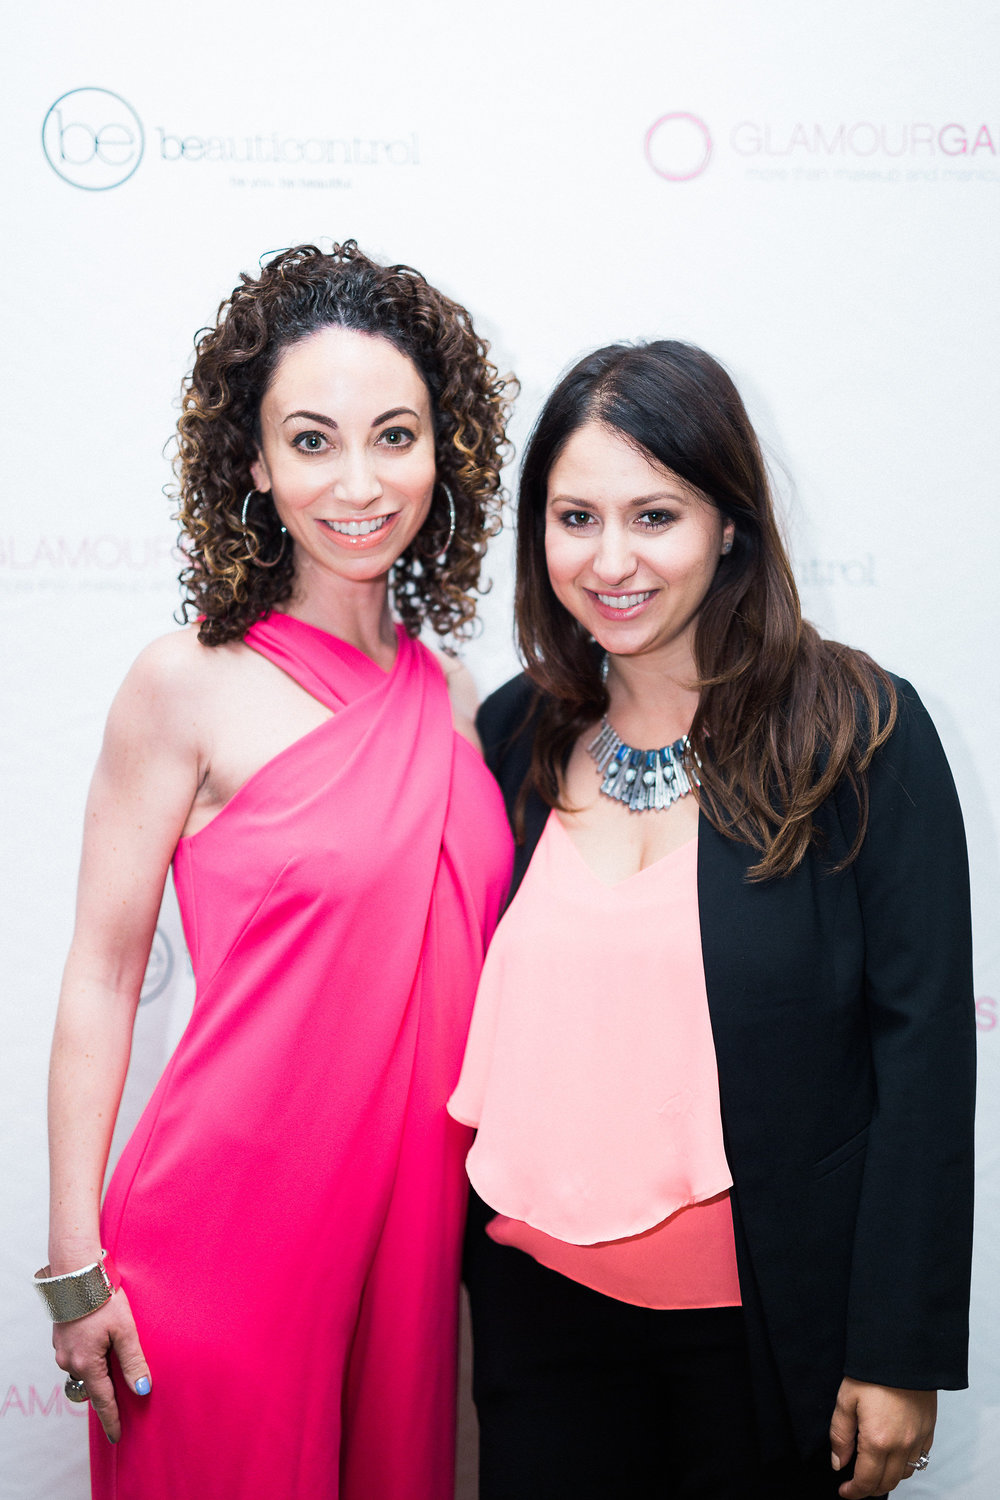 Allegra Cohen (left), co-chair of the Glammys, with Lauren Berger, this year's Inspiration Glammy Winner.